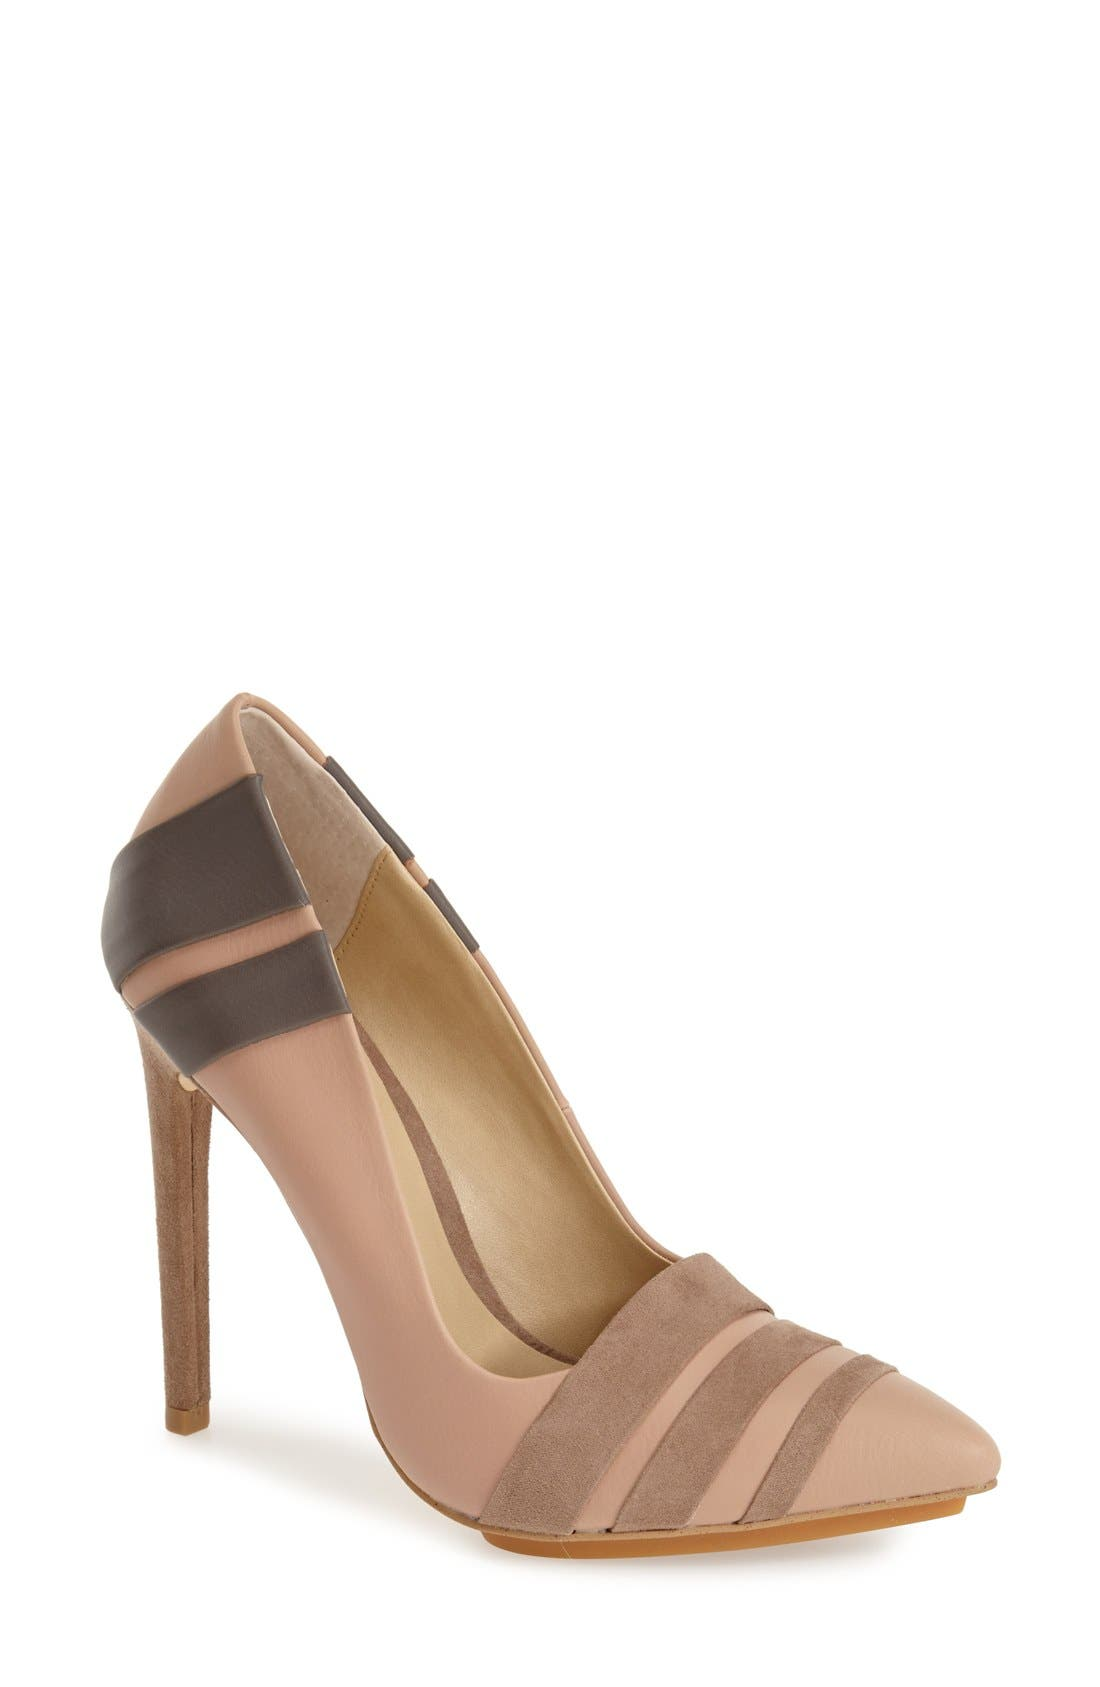 Alternate Image 1 Selected - gx by Gwen Stefani 'Cage' Pointy Toe Pump (Women)